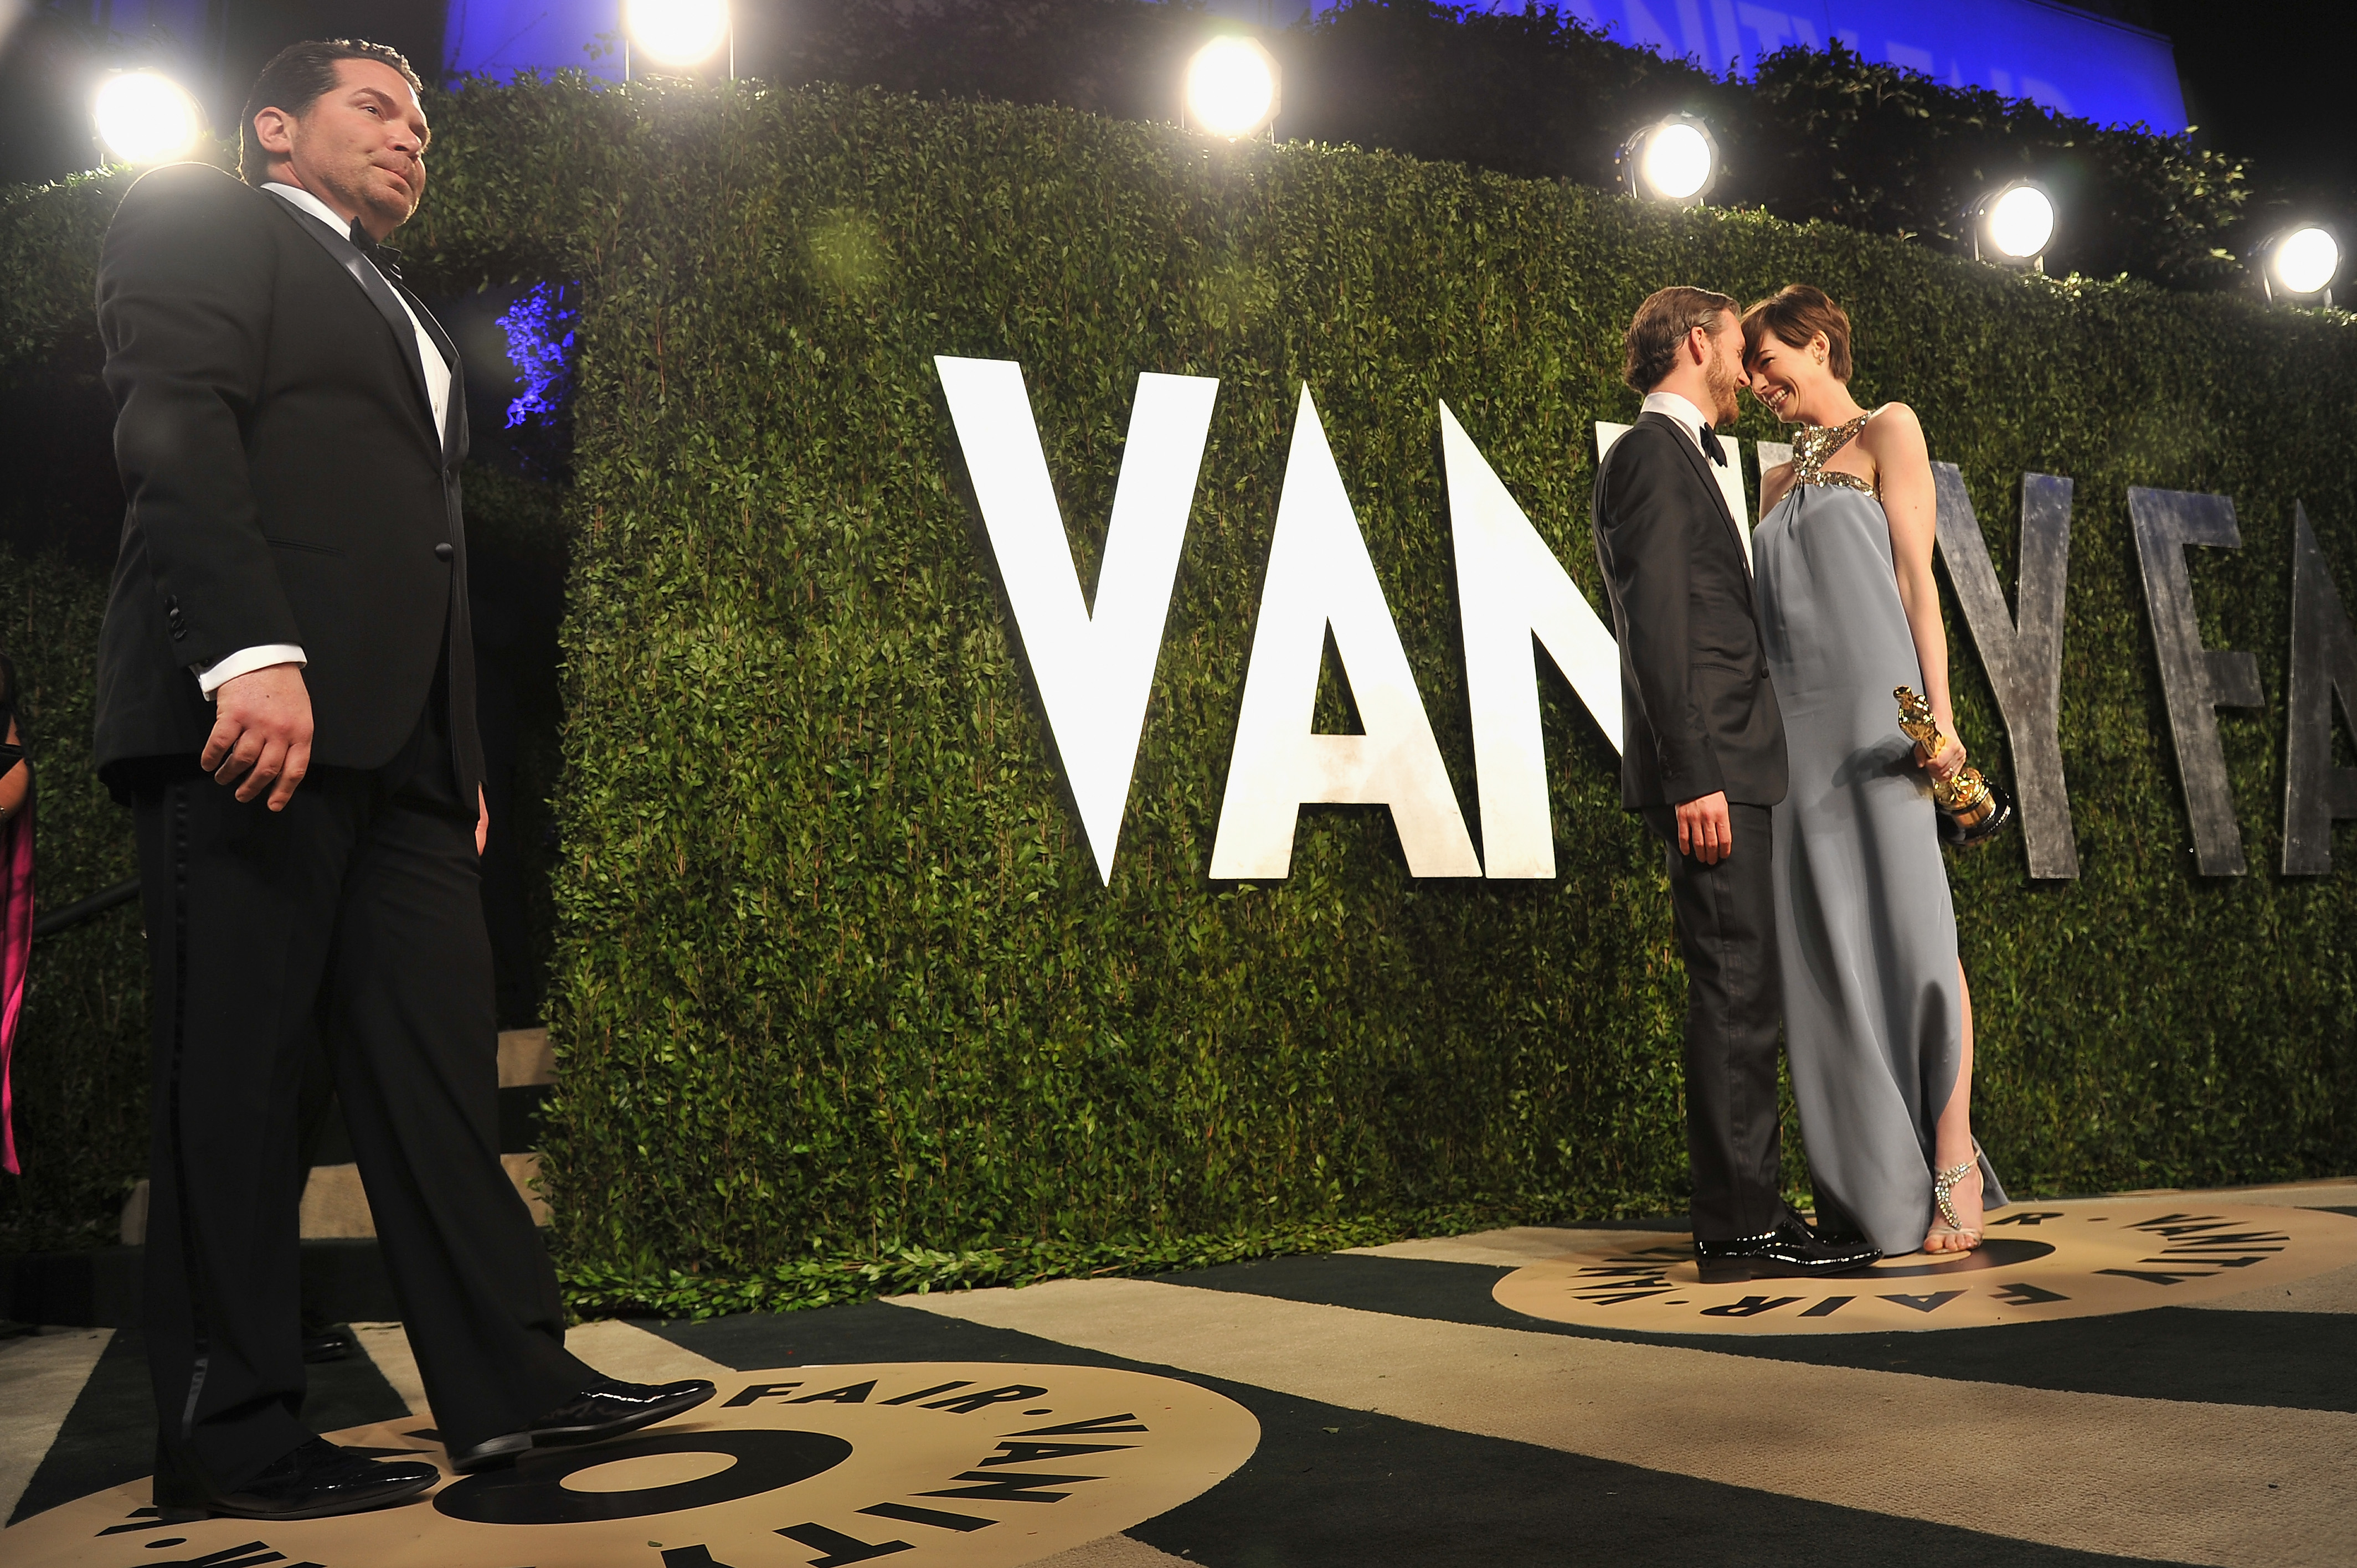 Hollywood's Oscar Party Wars Flare Up